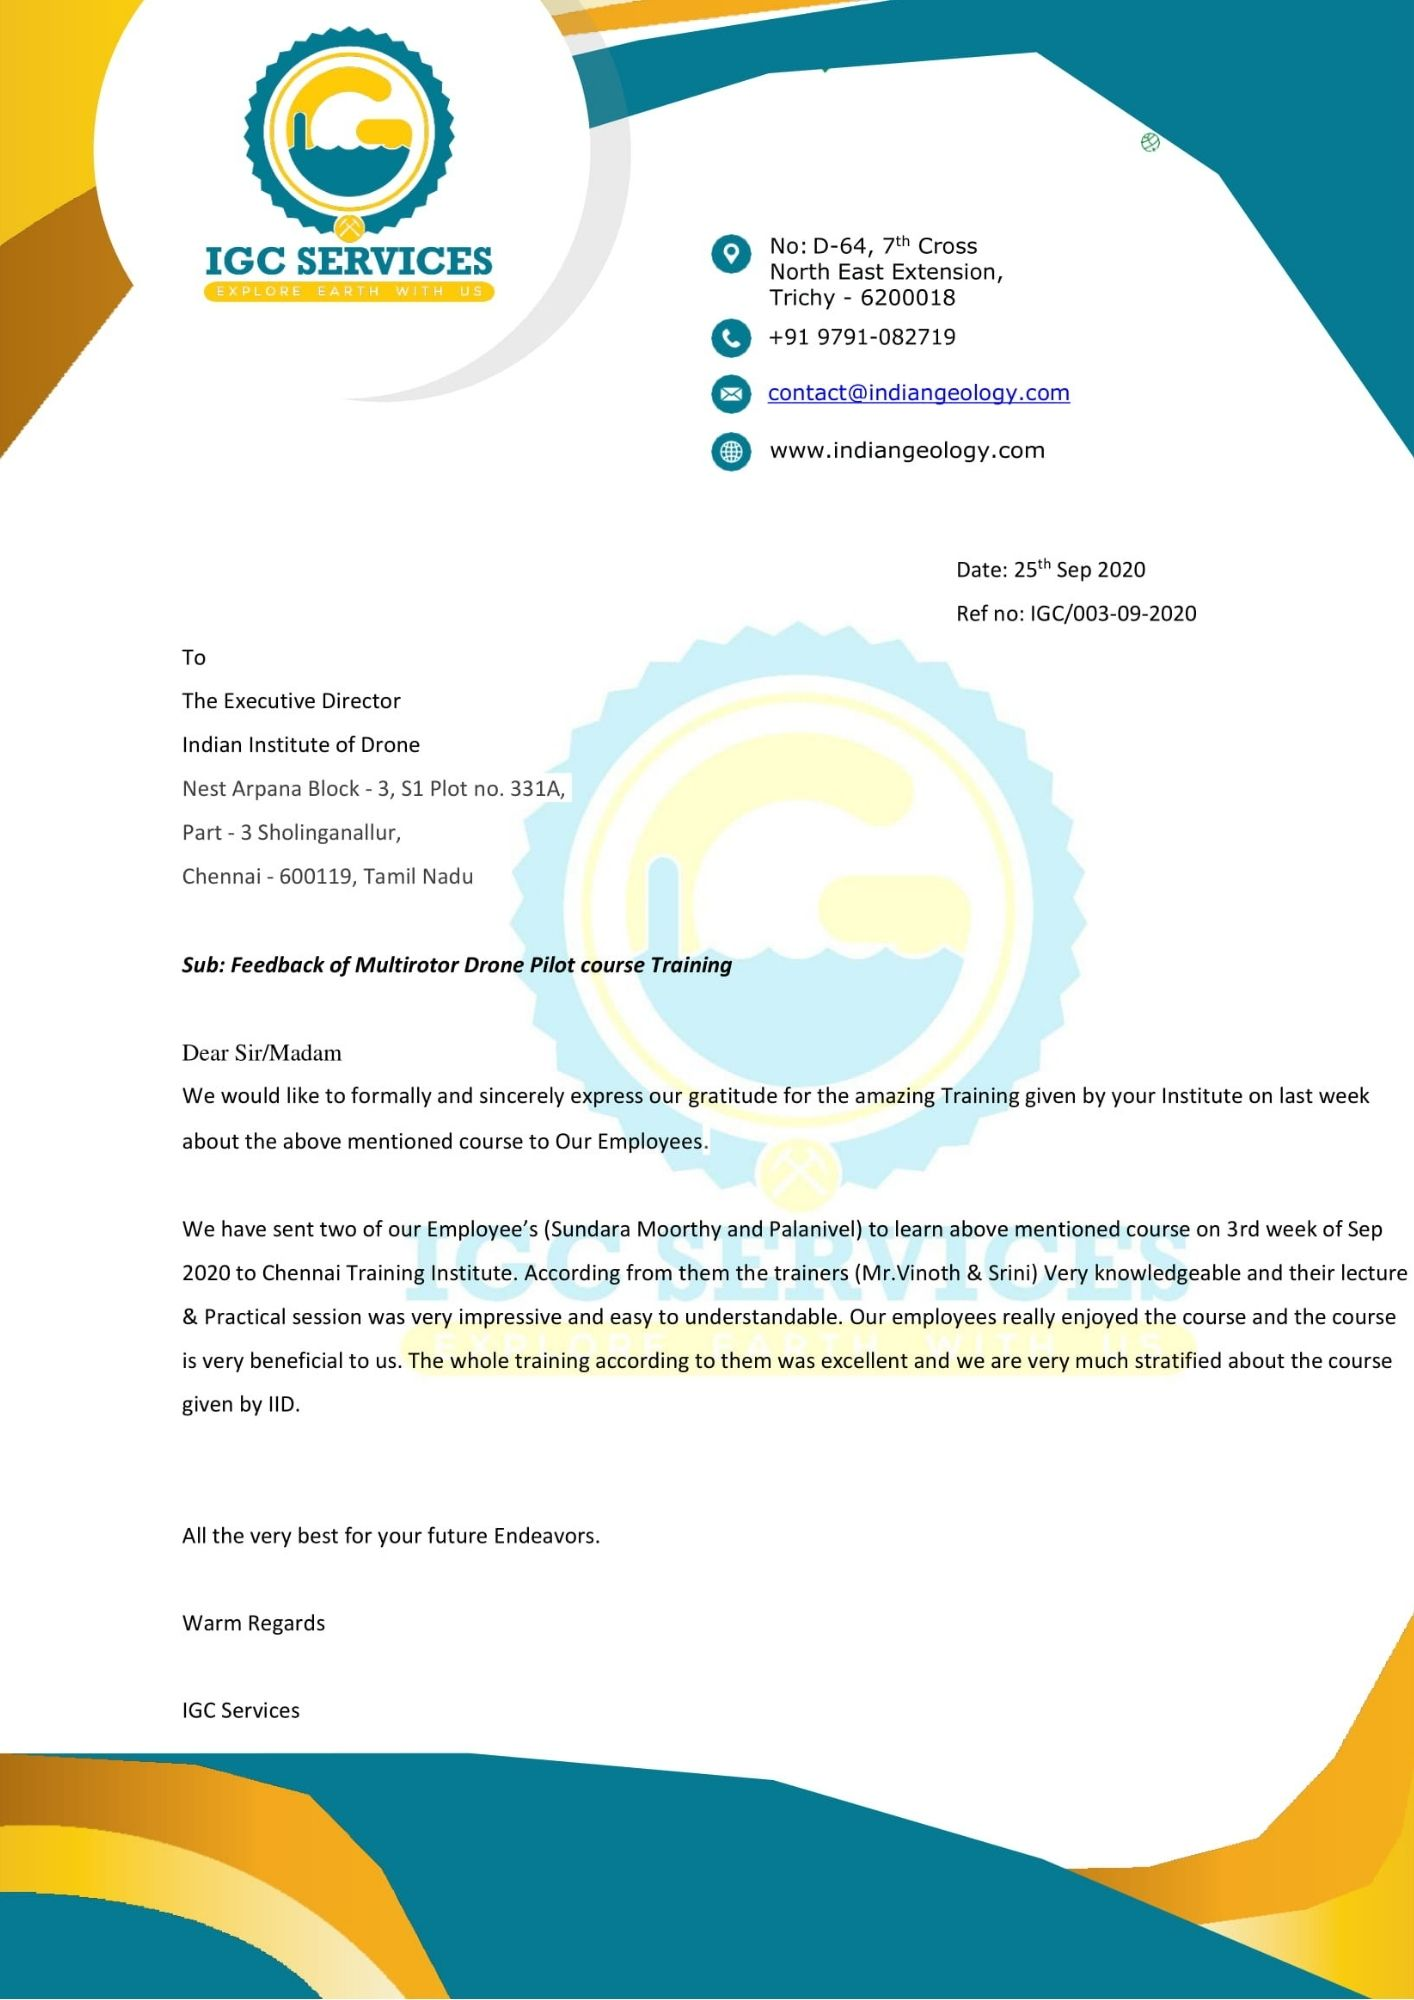 Satisfactory Letter for Drone Training Received from IGC Services